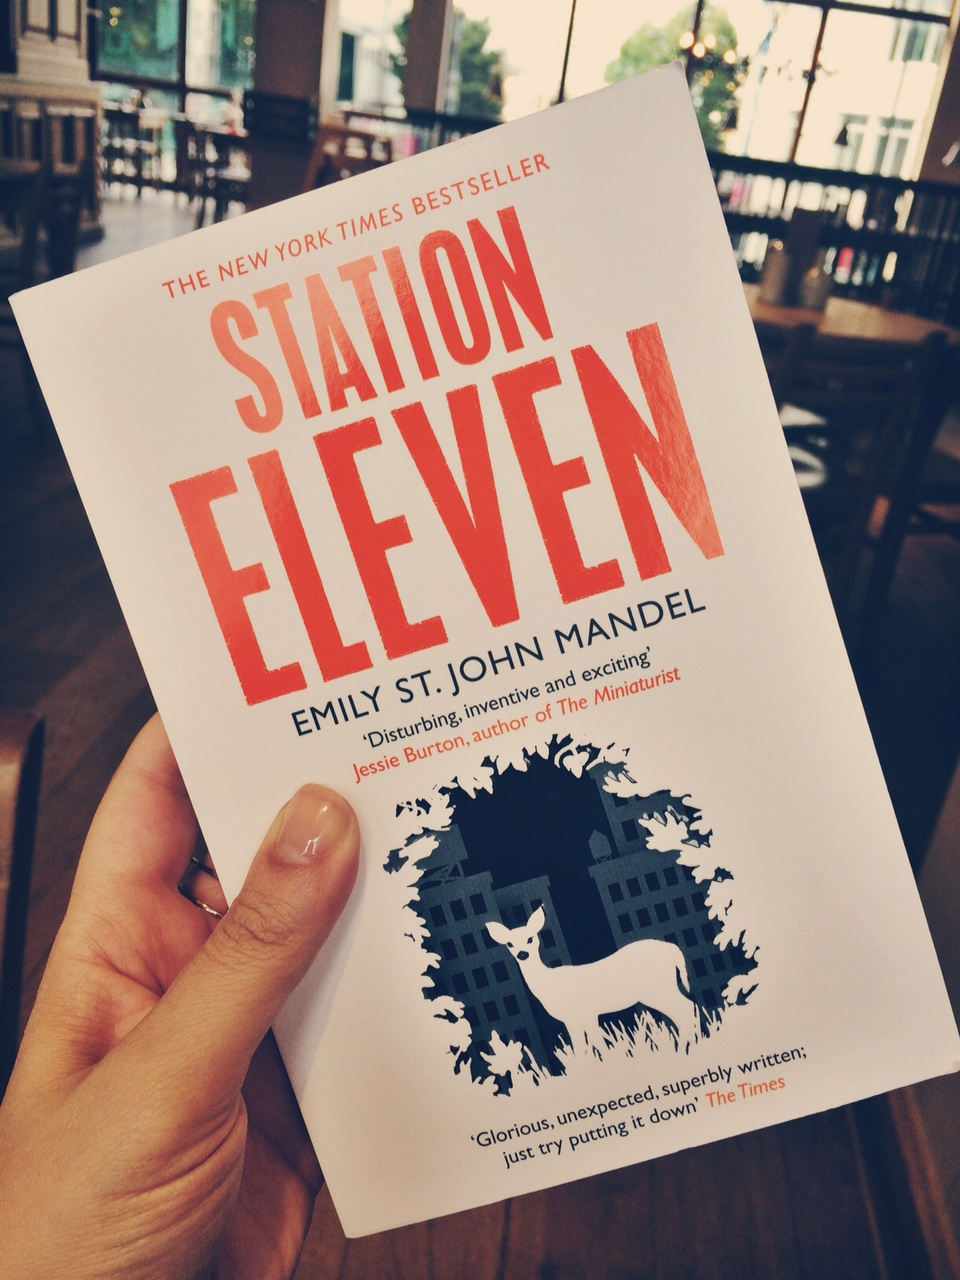 Online Chat Date: Wednesday 26th August 2015, 7:30pm €� 9pm, Uk Time Our  Next Book: Station Eleven By Emily St John Mandel, Published By Picador